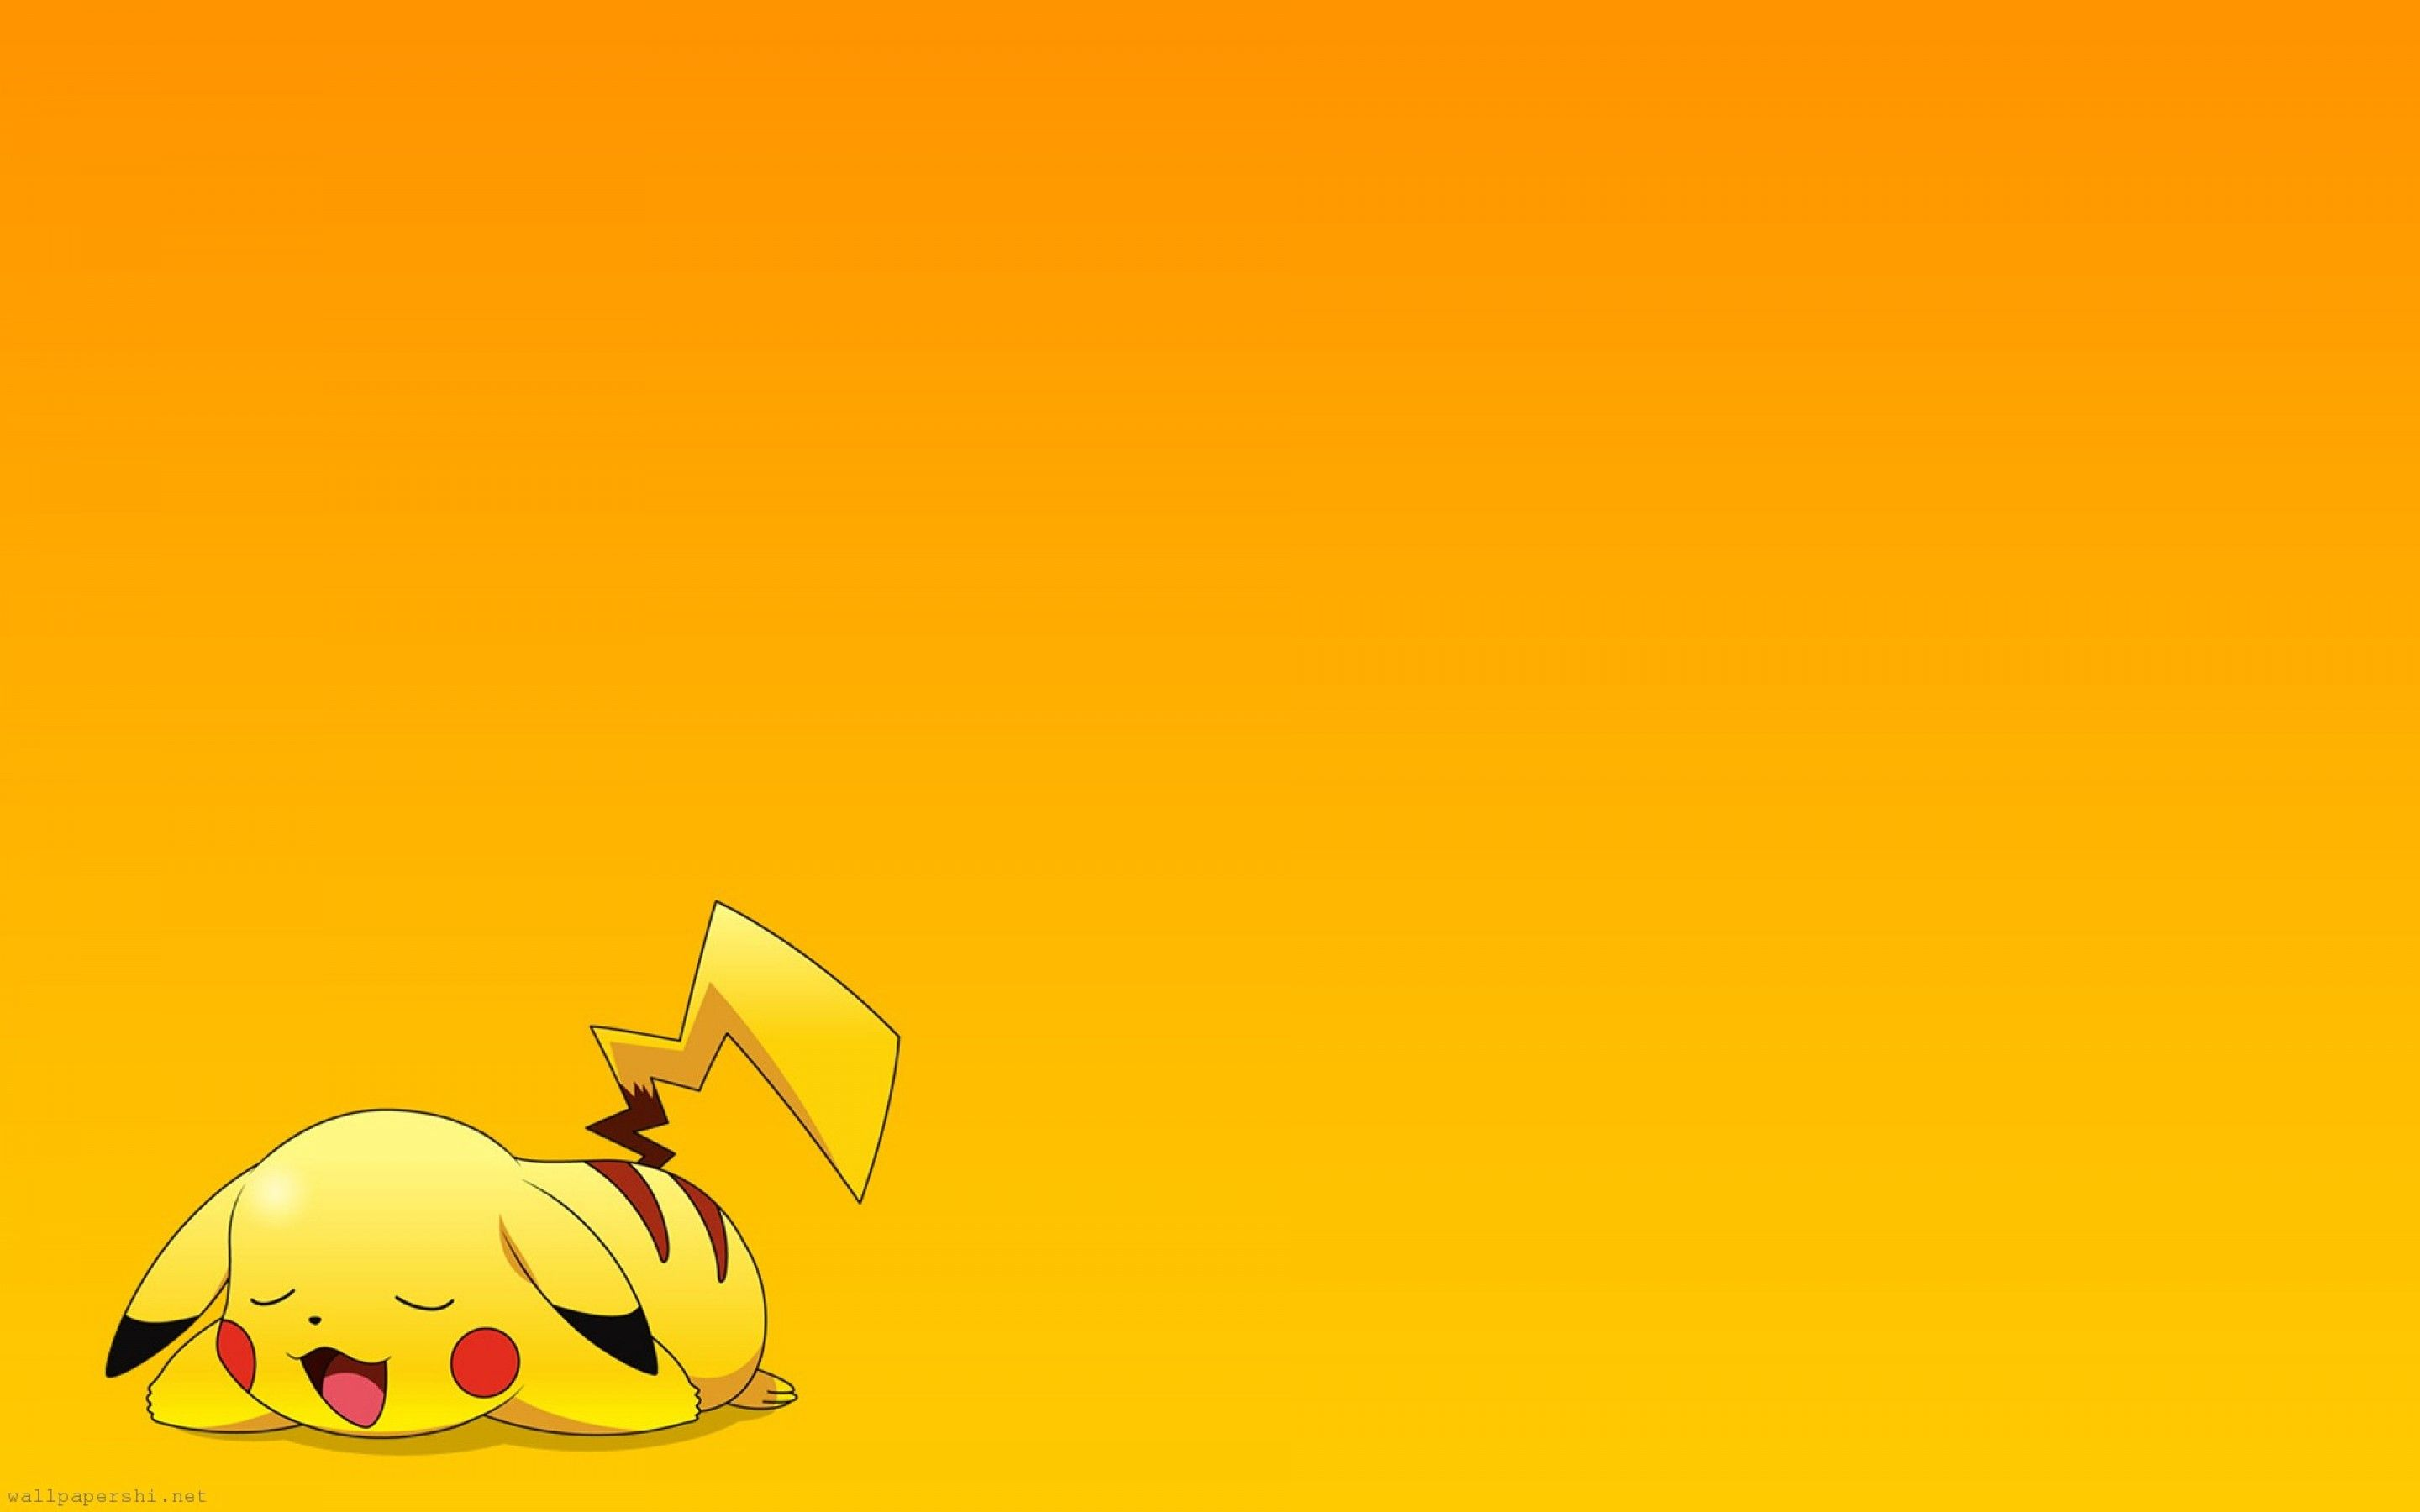 Wallpapers For Pokemon Wallpaper Hd Pikachu HD Range